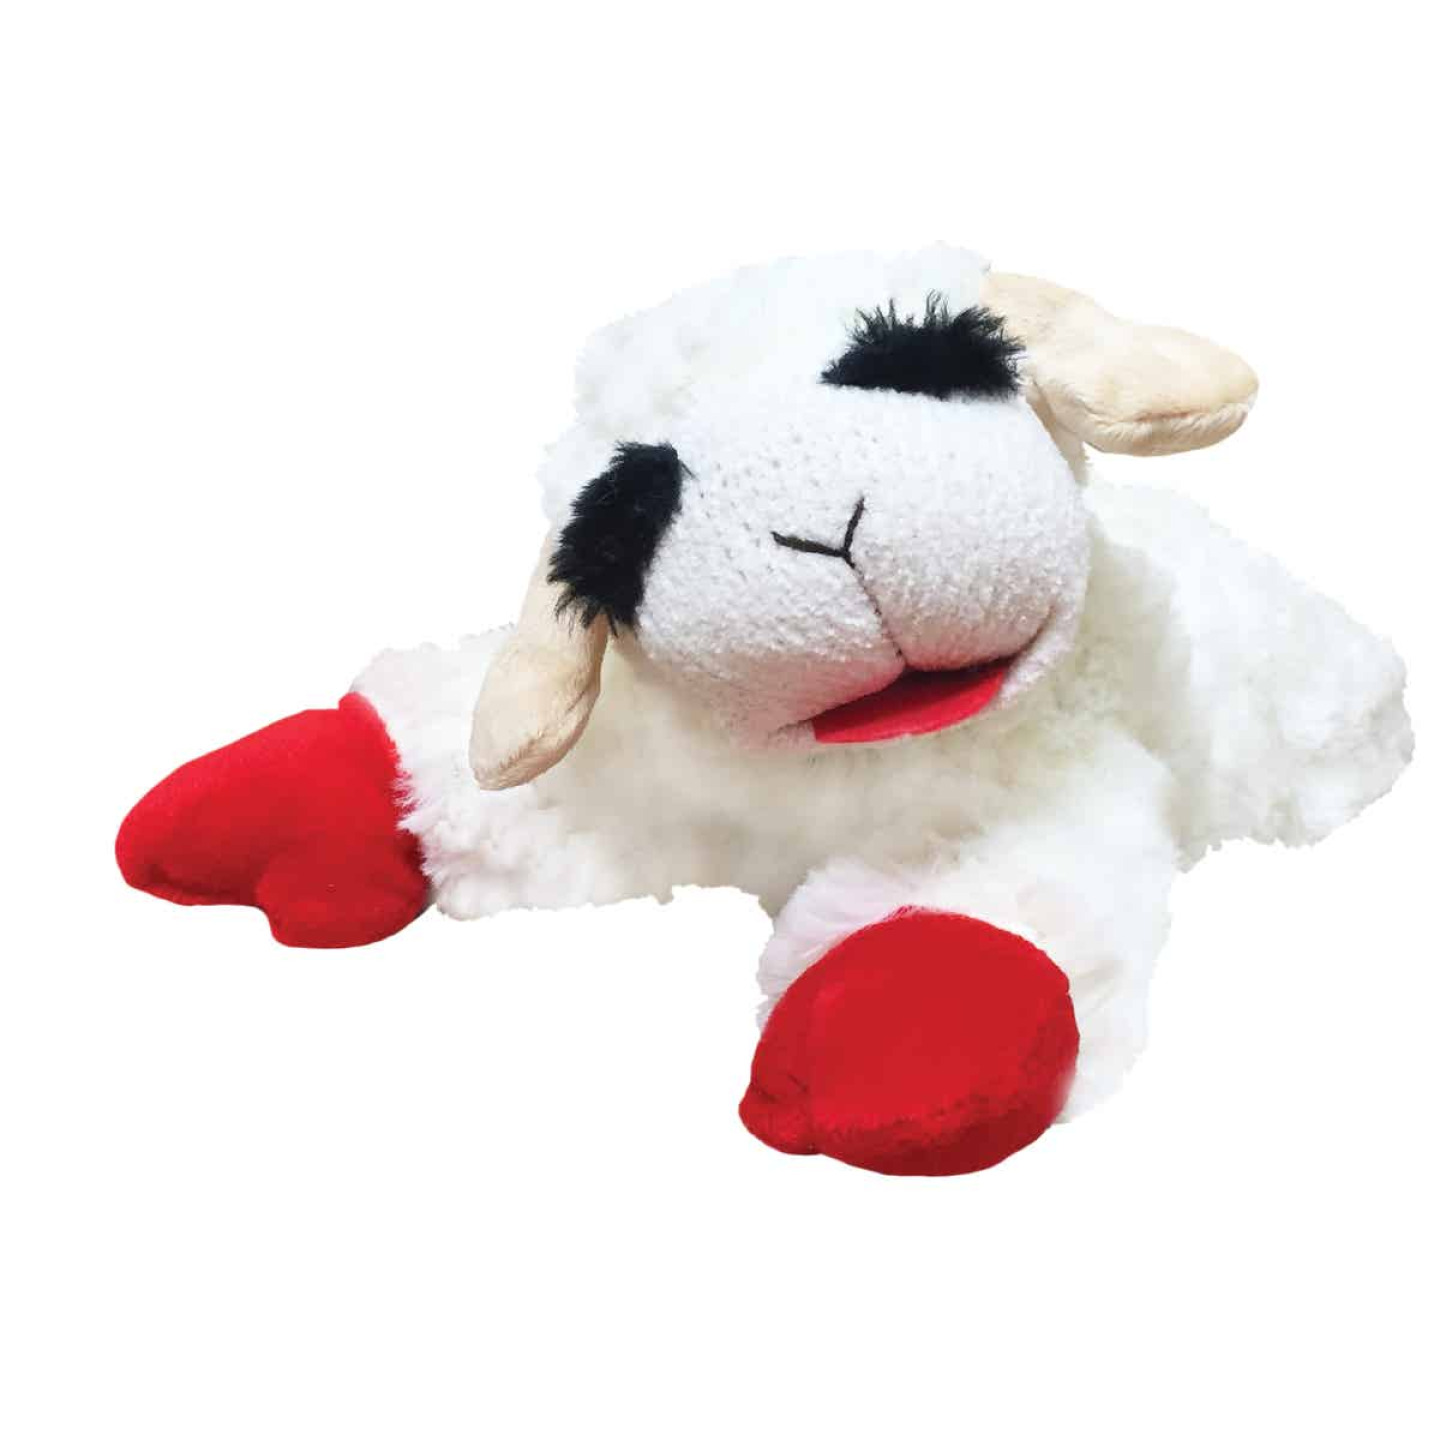 Multipet 10.5 In. Plush Lamb Chop Dog Toy Image 1